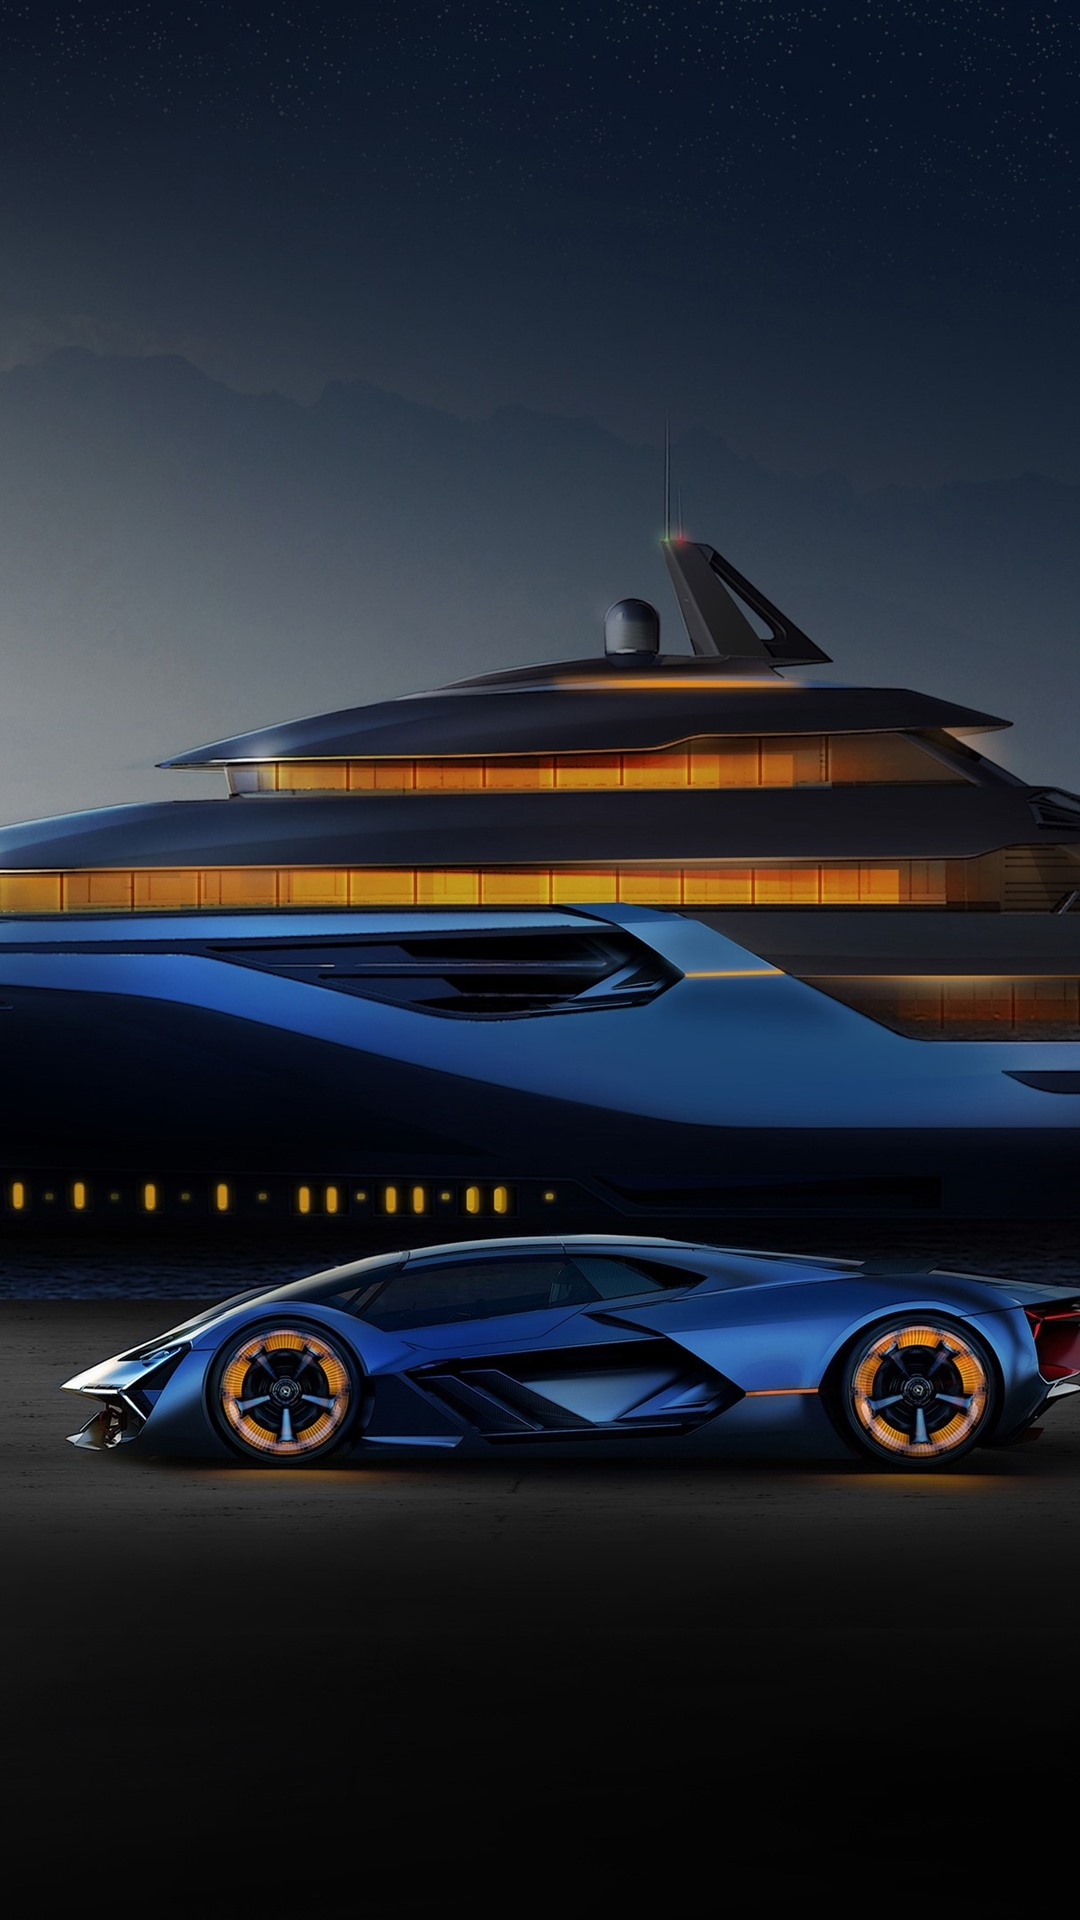 Blue Lamborghini Yacht Helicopter 1080x1920 Iphone 8 7 6 6s Plus